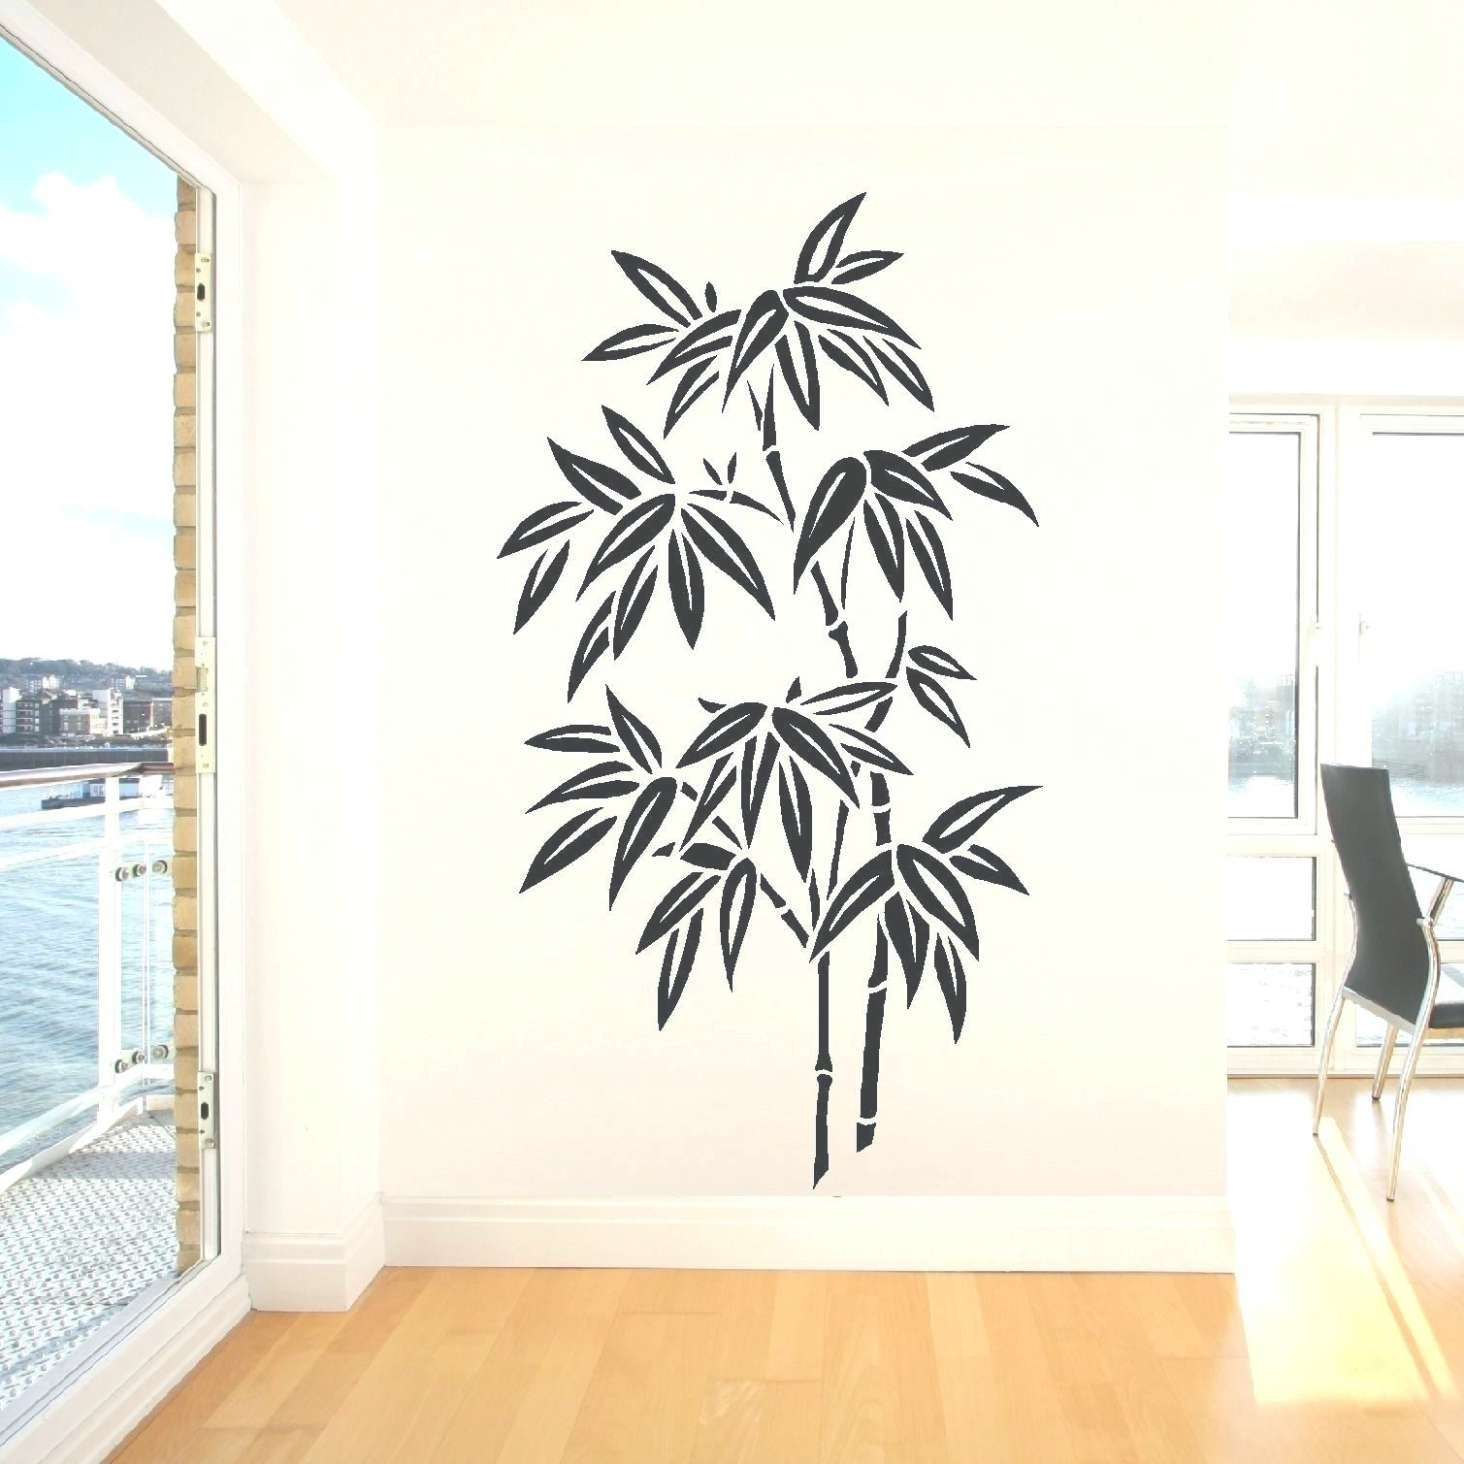 Tree Wall Decal Hobby Lobby Beautiful Awesome Palm Tree Wall Art Within Recent Palm Tree Wall Art (View 20 of 20)